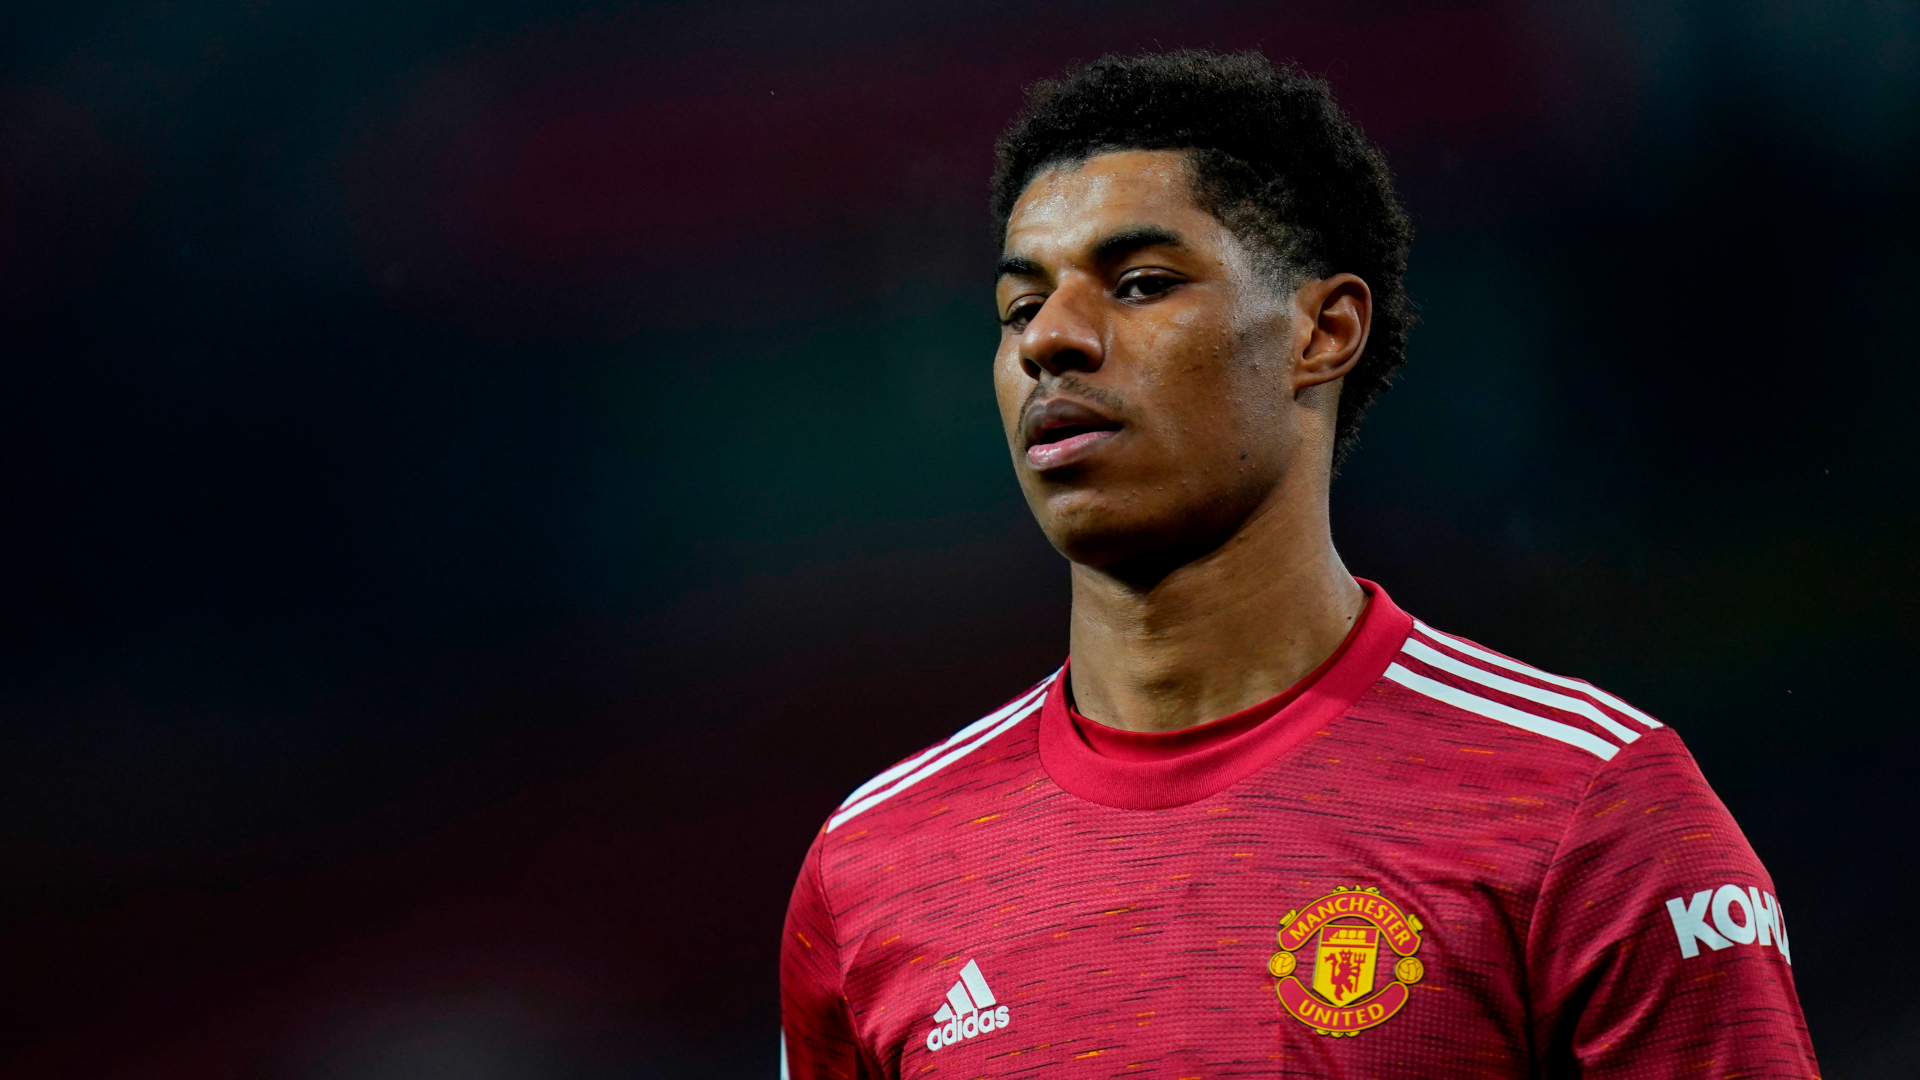 'I do with England!' - Rashford diplomatically navigates Sancho question during Twitter Q&A